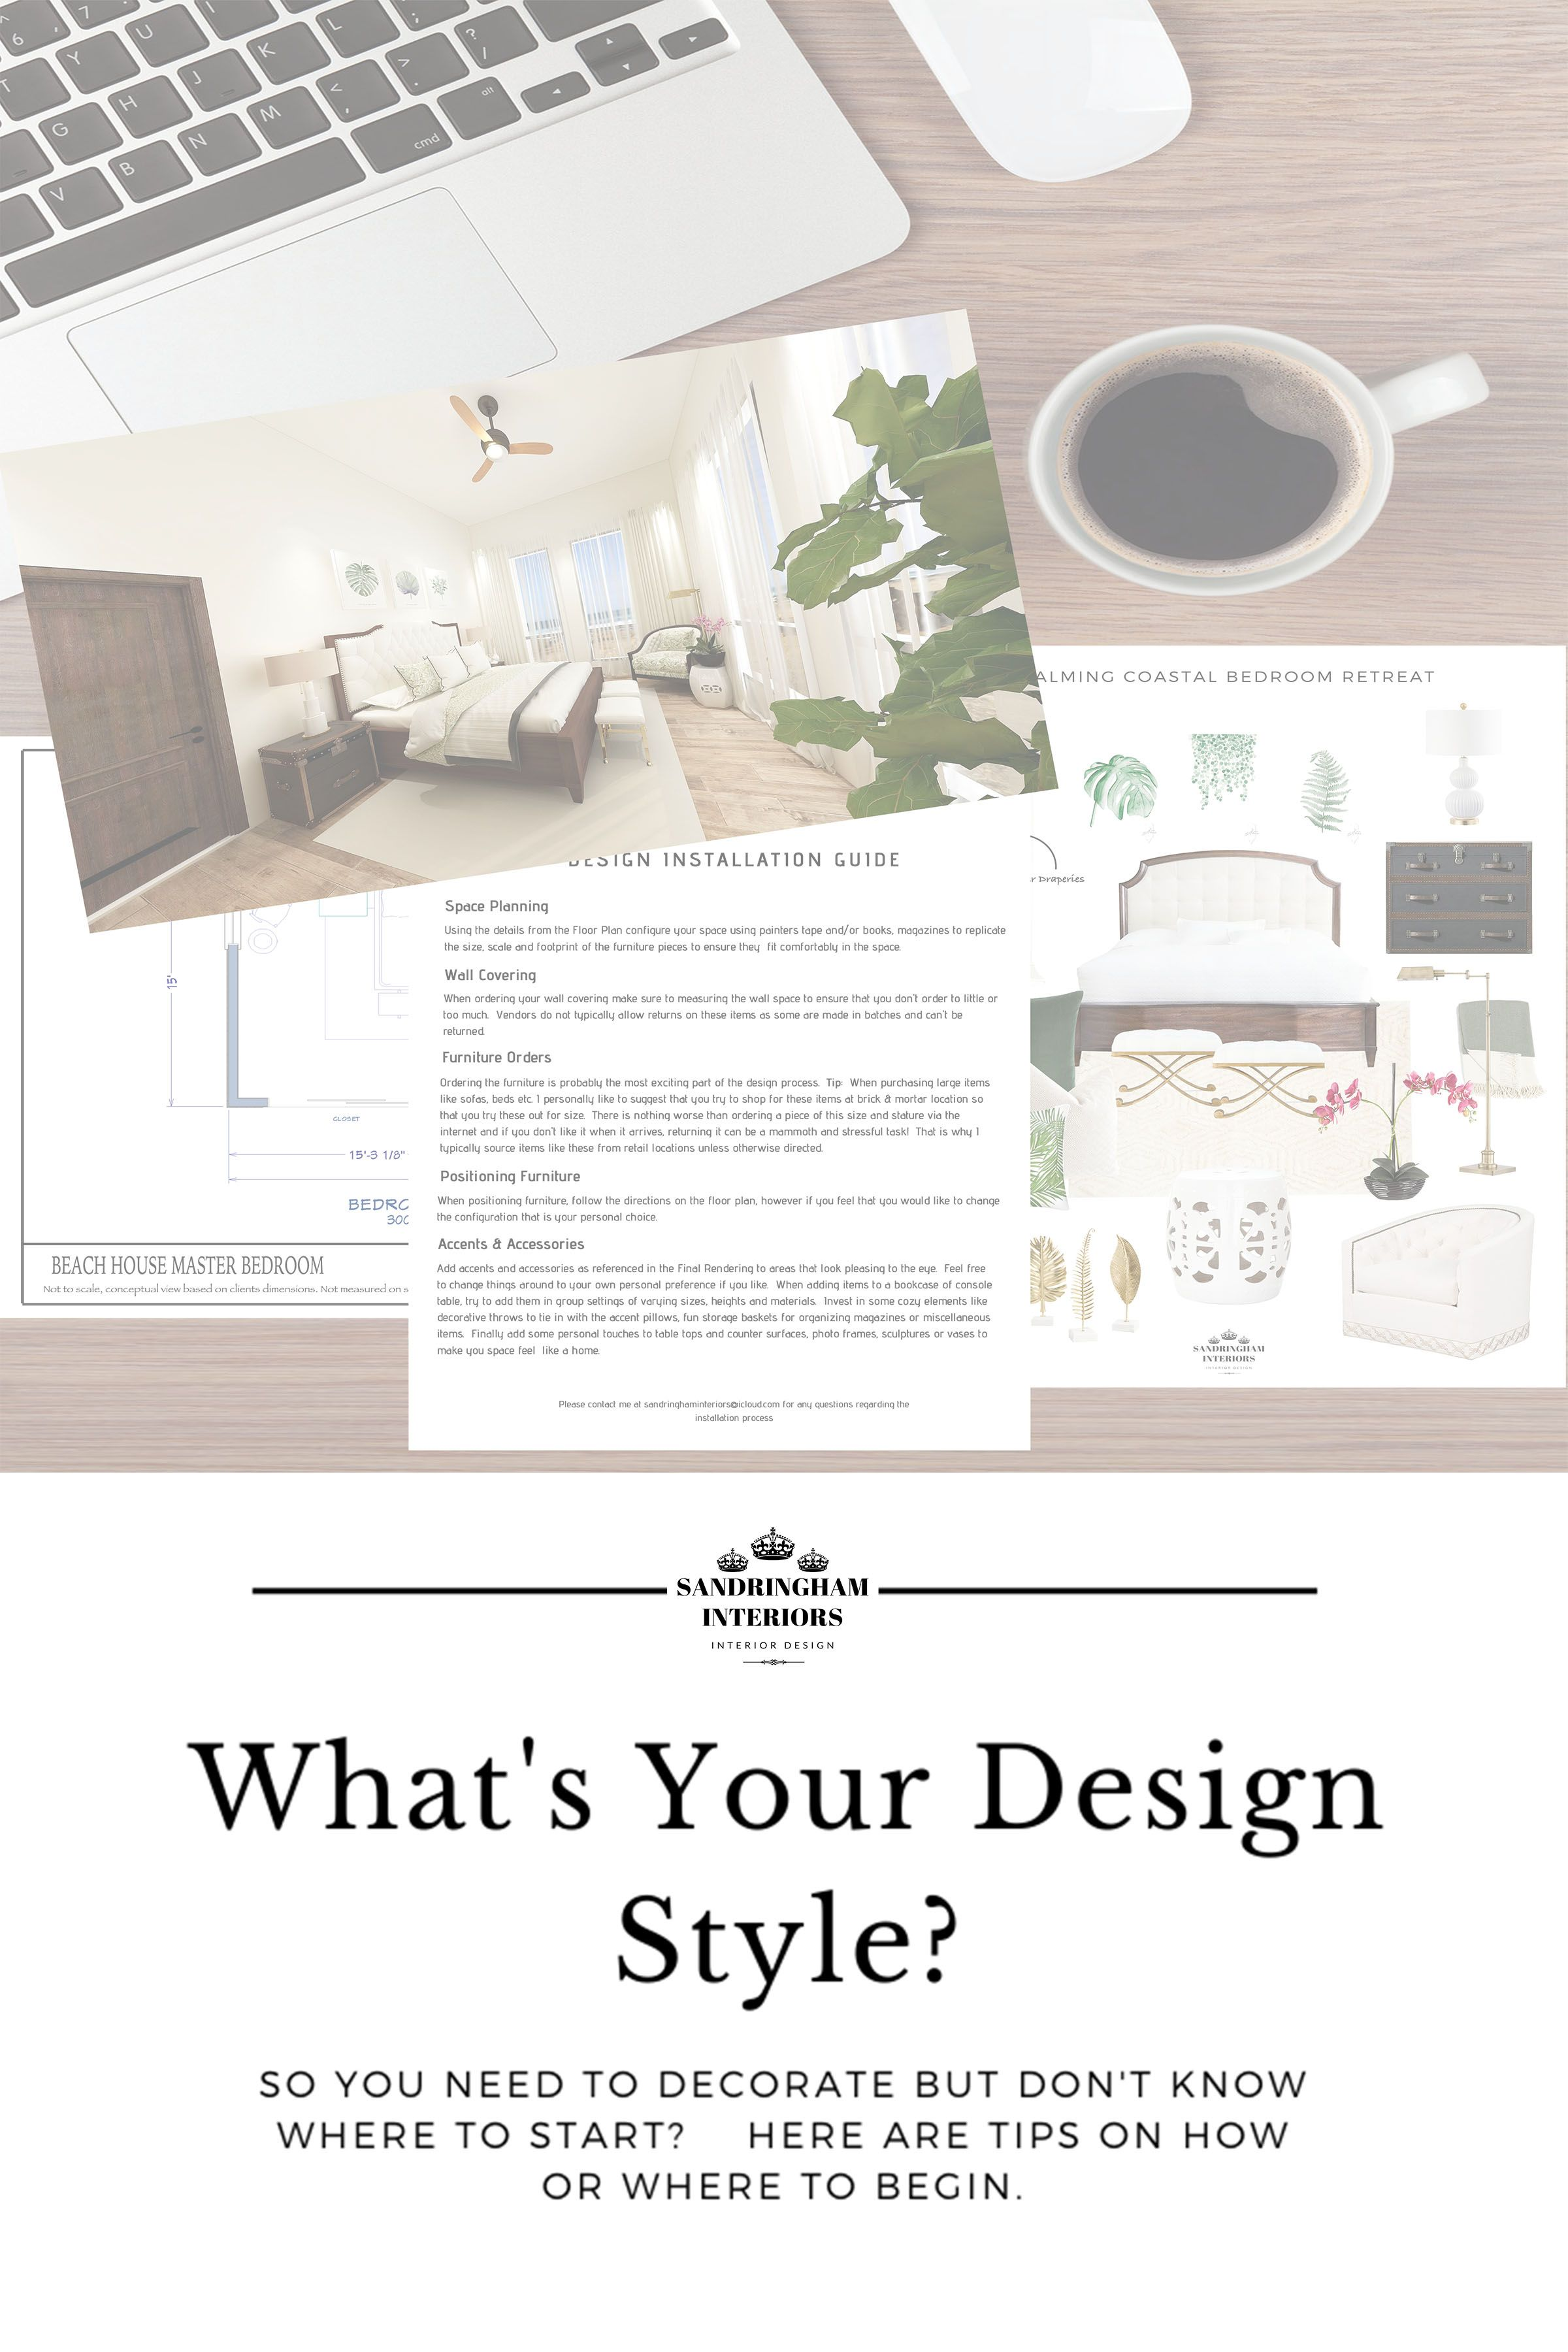 How do you know what Design Style you are?  Do you flip through various magazines or scour the internet and look at page after page of beautifully decorated rooms to see which one peeks your interest?   Or have you always known your design style but is changing overtime as new ideas and designs are gracing home decor magazines? #interiordesign #decorideas #Howto #Doyouknow #designquiz #onlinedesign